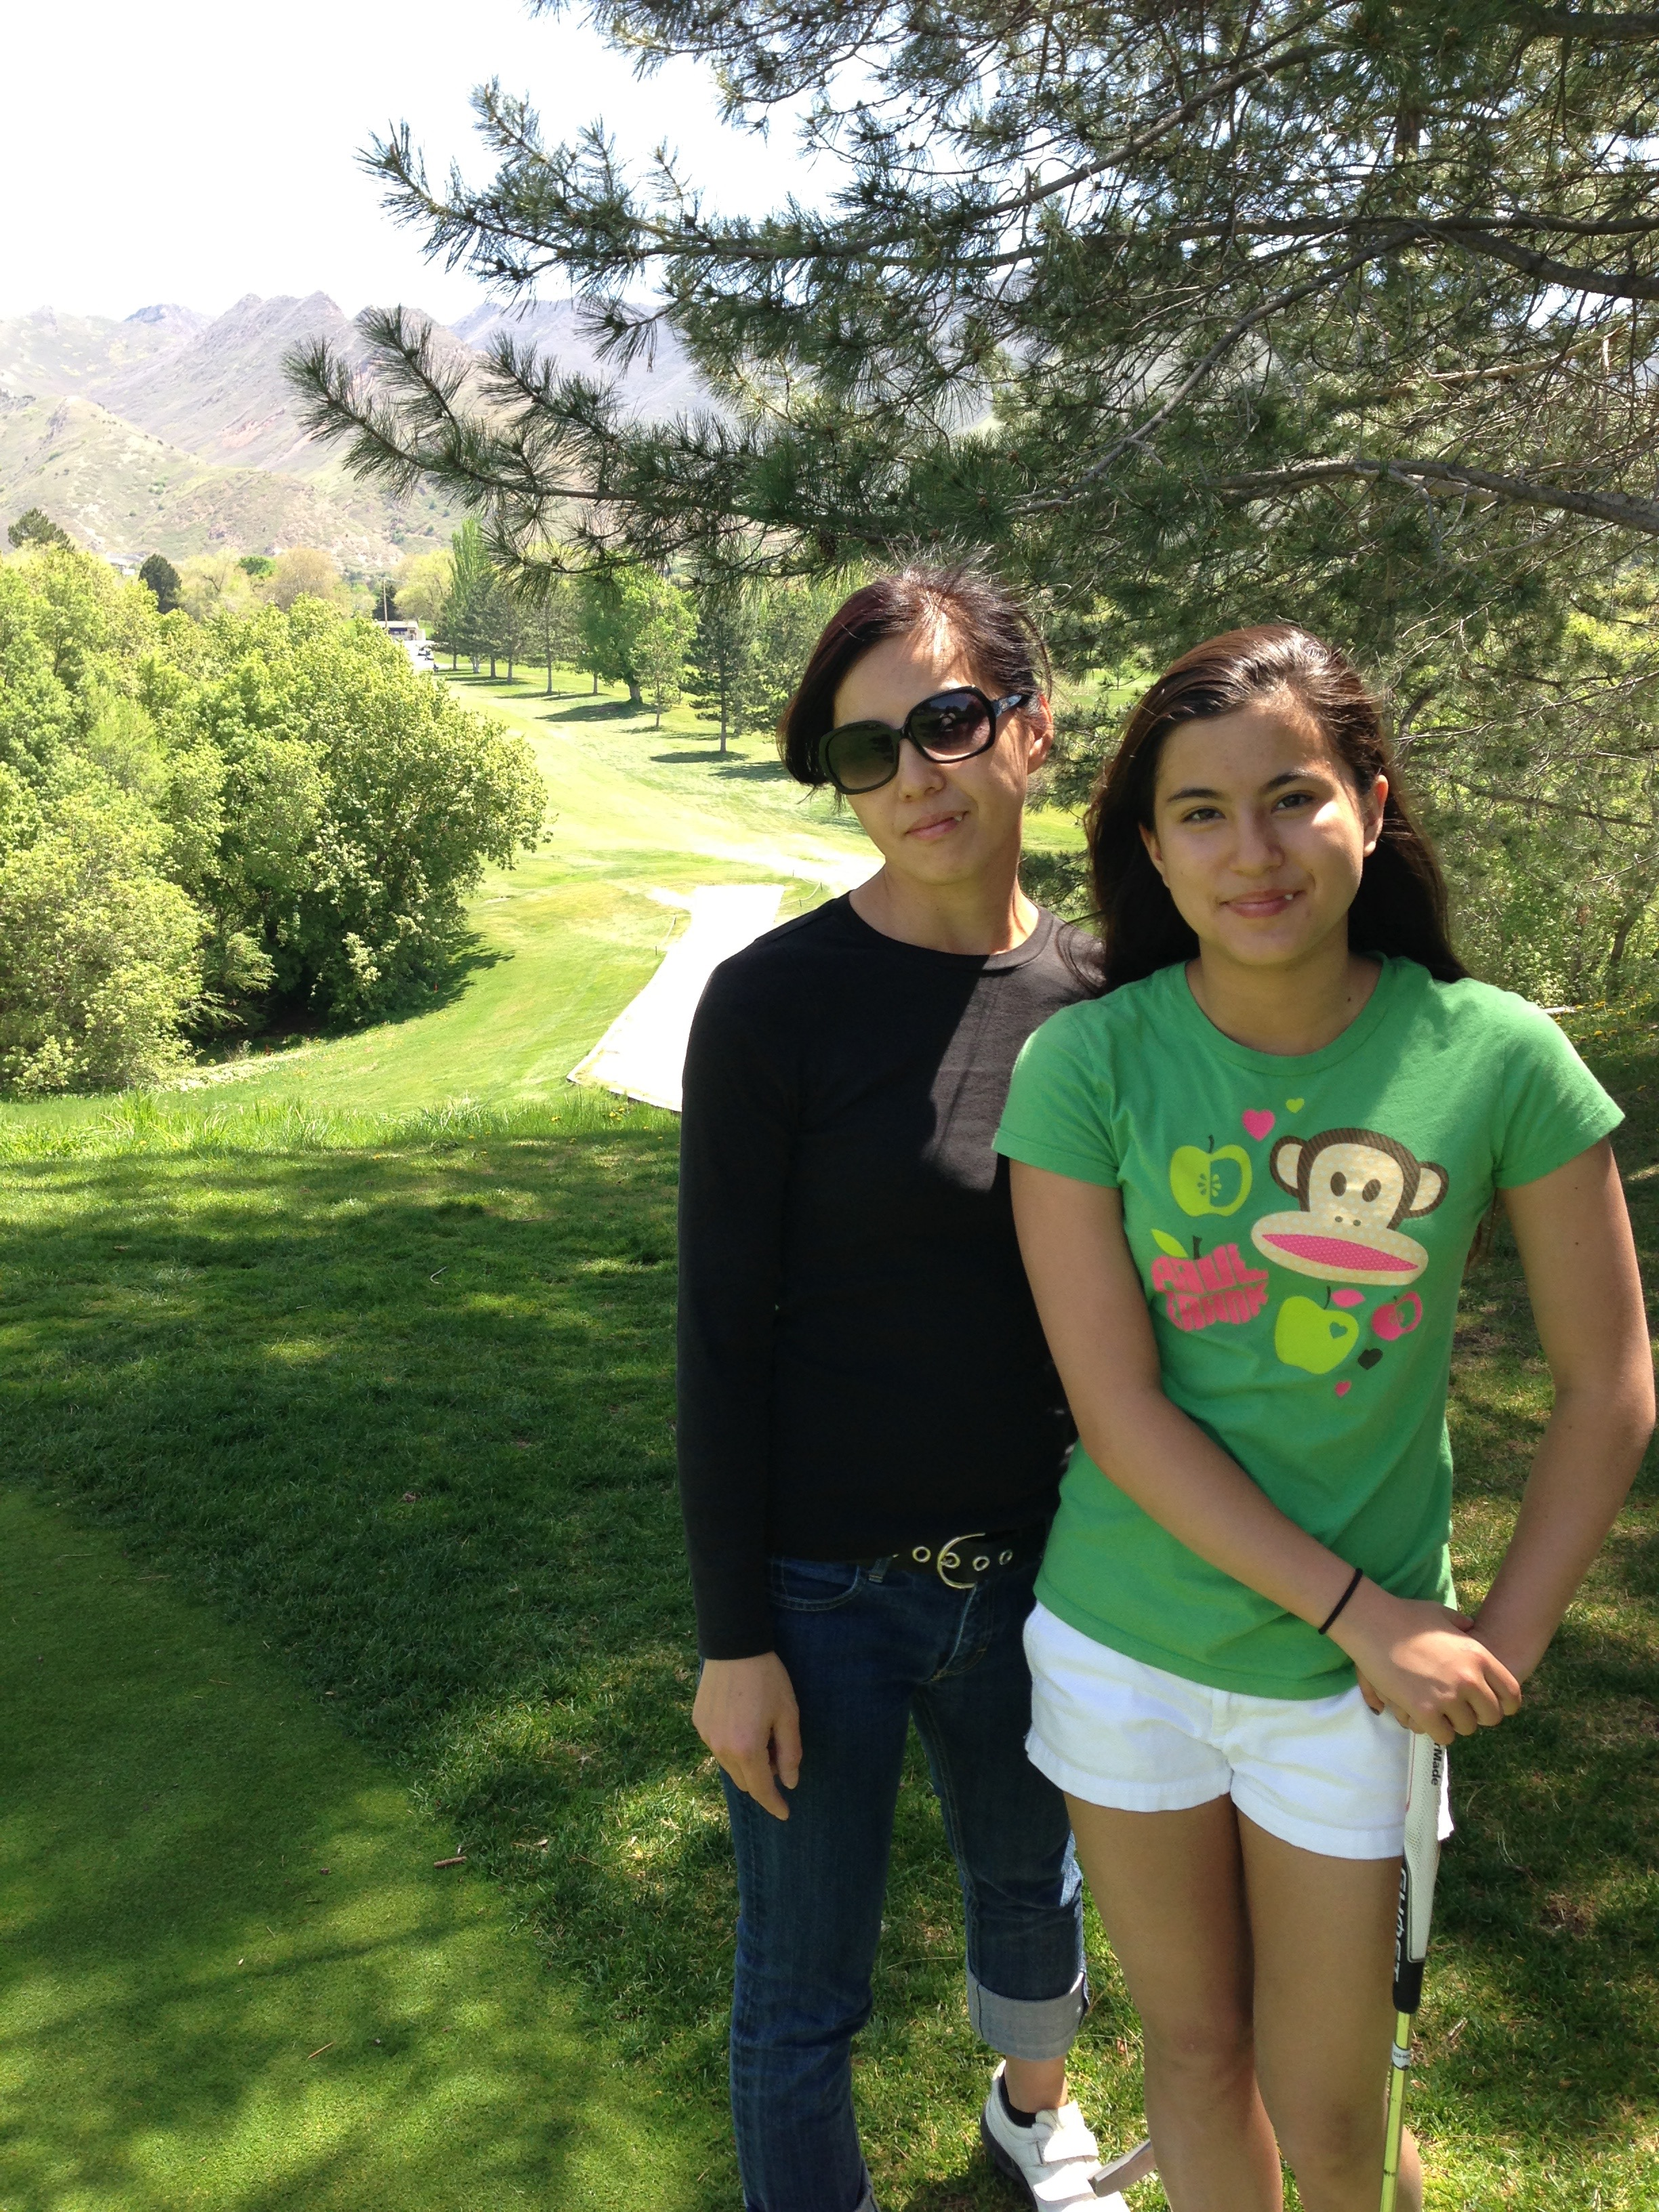 Me & mom at our home course, Bonnevile in Salt Lake City.